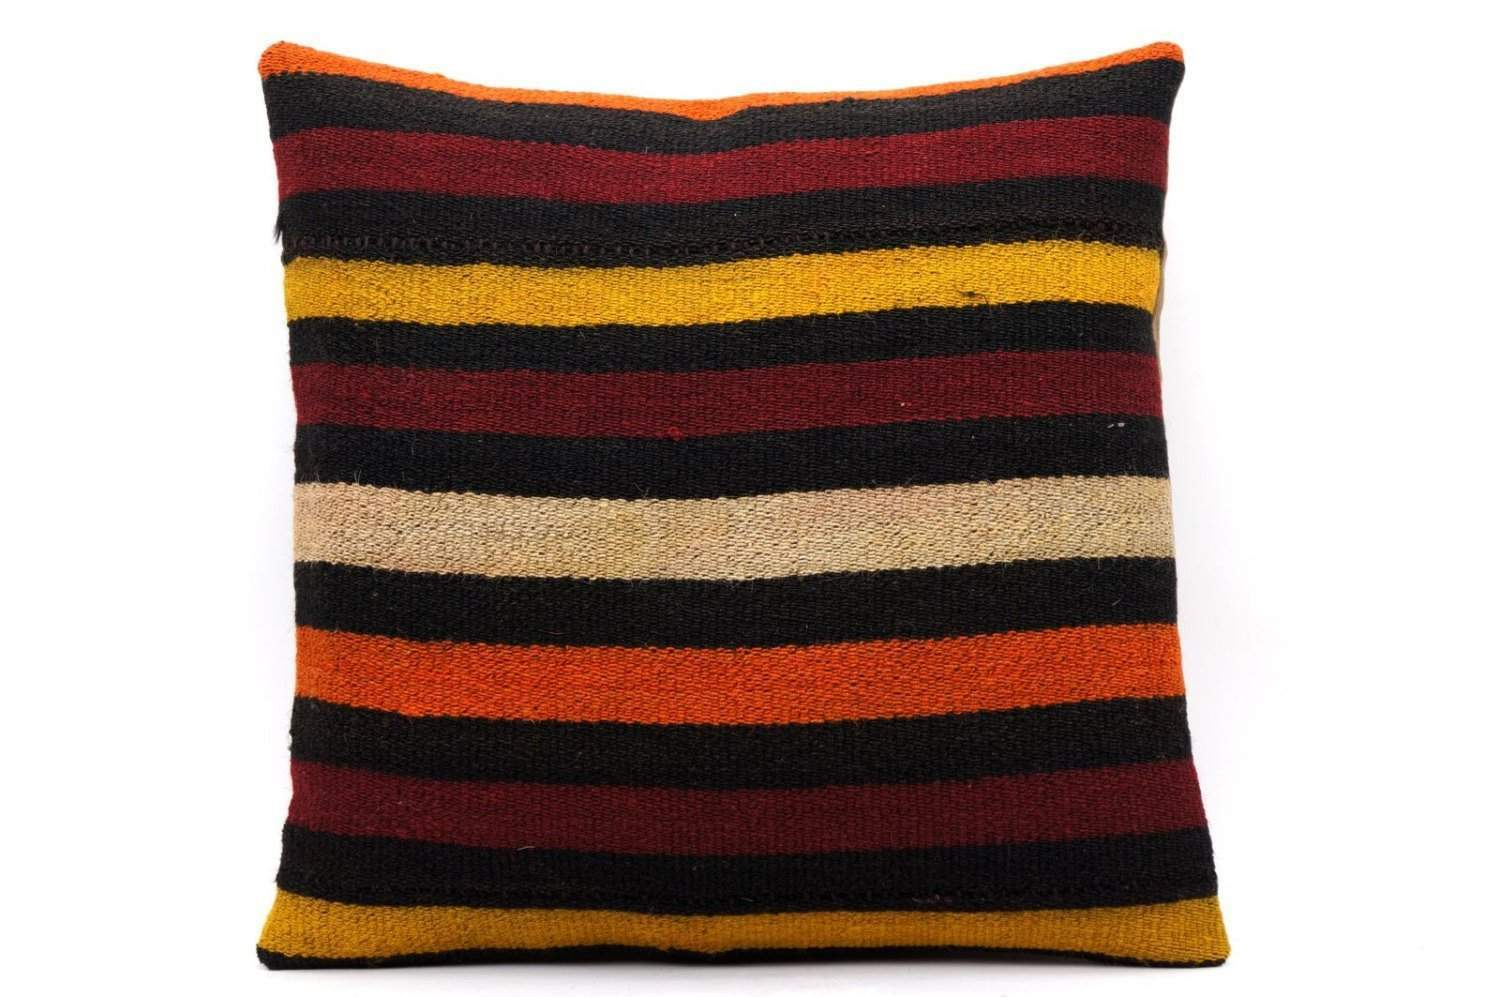 CLEARANCE 16x16 Vintage Hand Woven Kilim Pillow 547  ,black, beige, yellow,claret red, orange, striped - kilimpillowstore  - 1